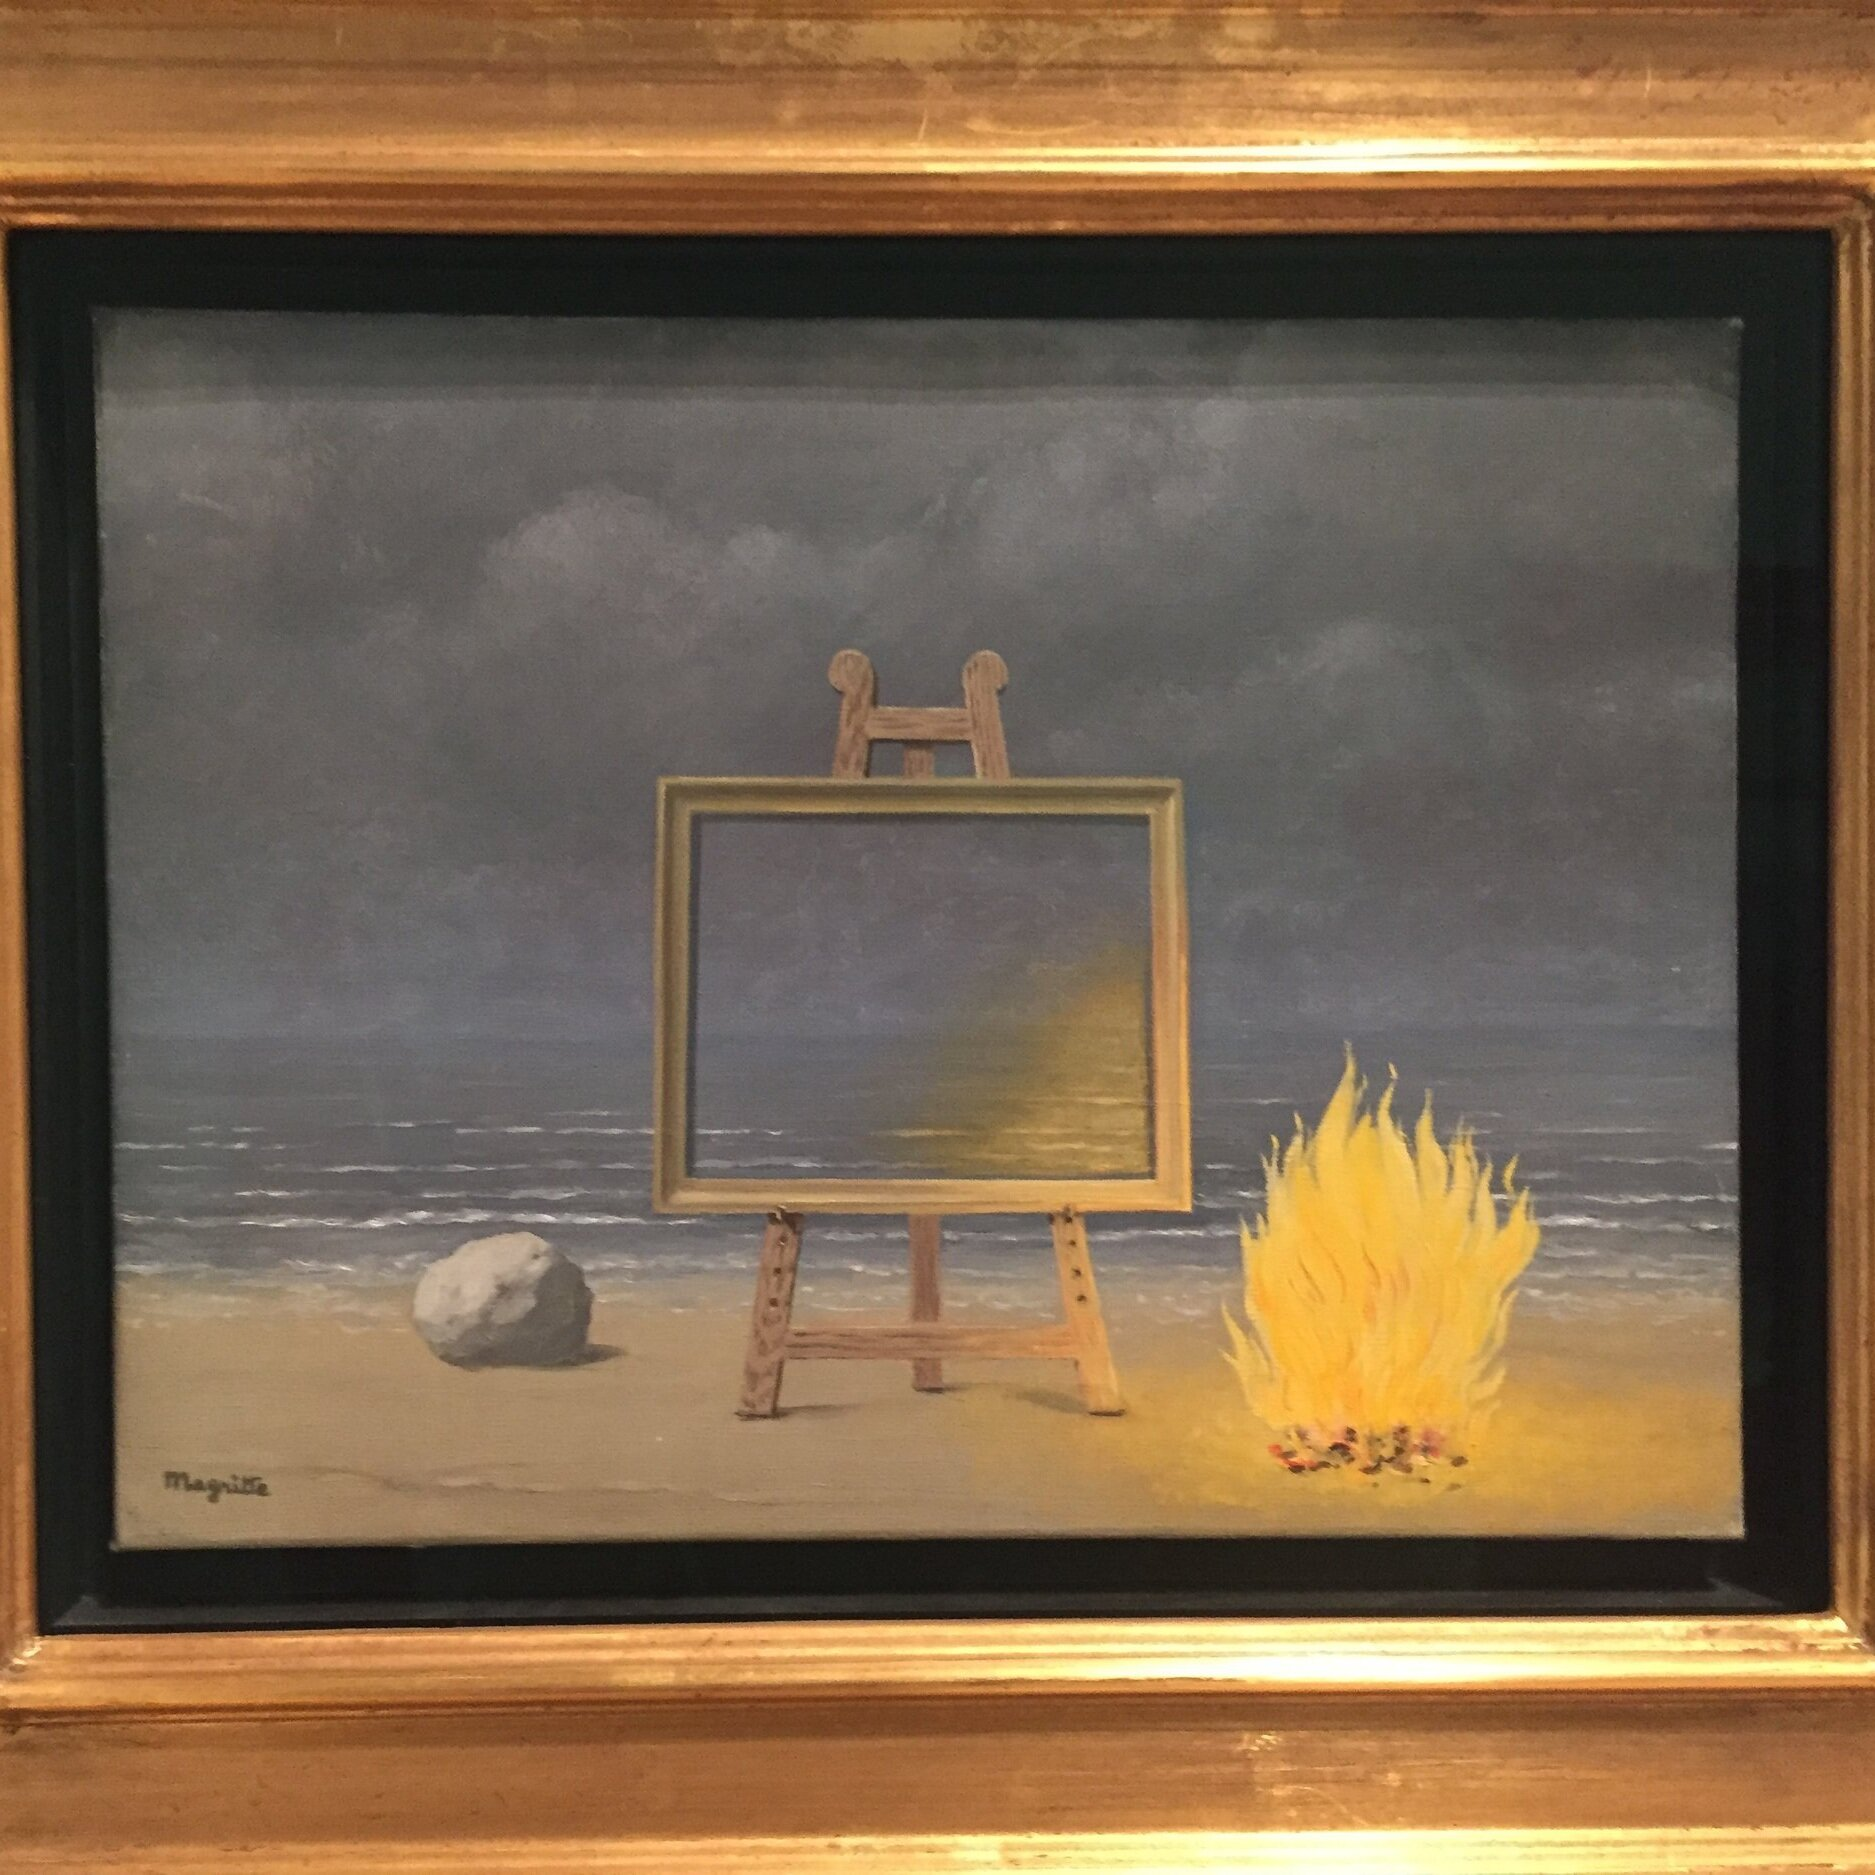 Magritte's The Fifth Season, an exhibition of late work at SF MoMA has some surprises